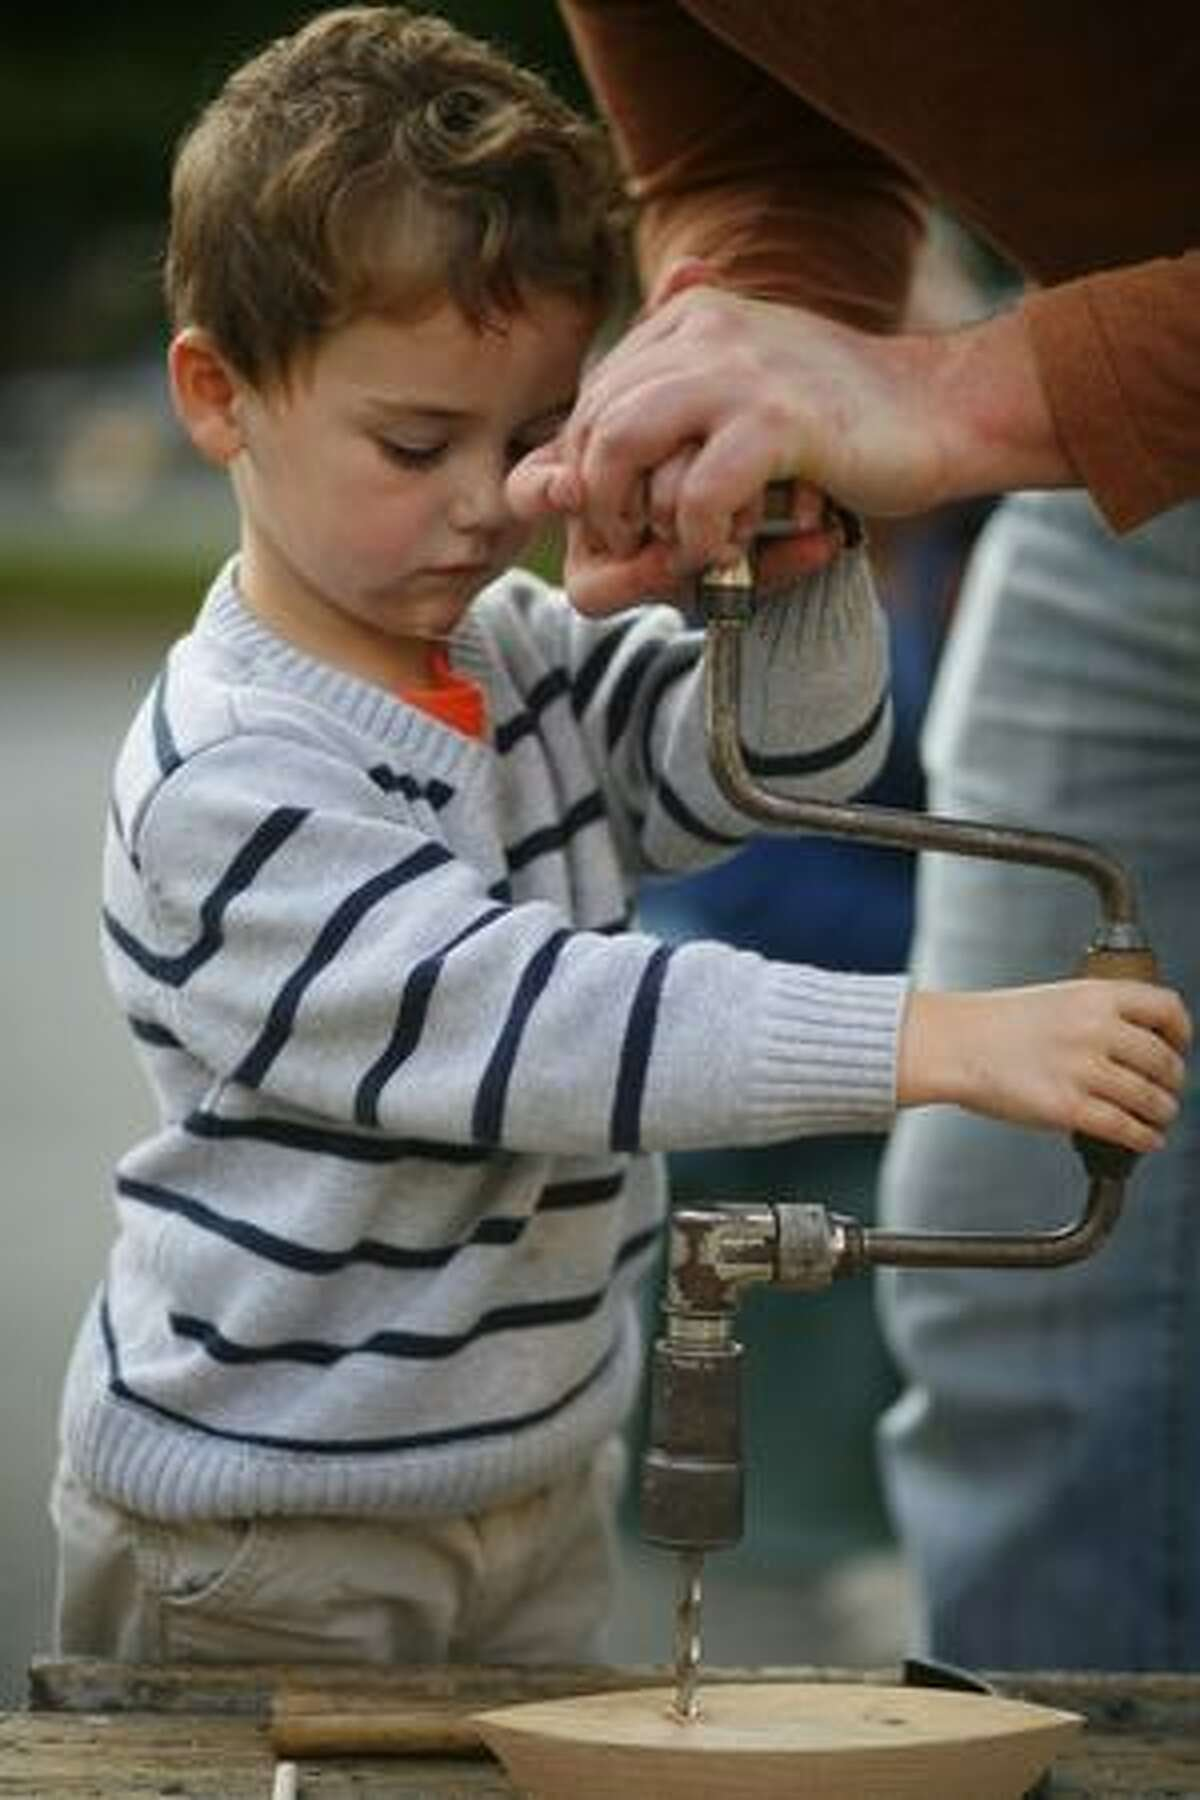 Reason Israel, 4, works on a wooden toy boat on Friday August 7, 2009 at the South Lake Union Block Party in Seattle.